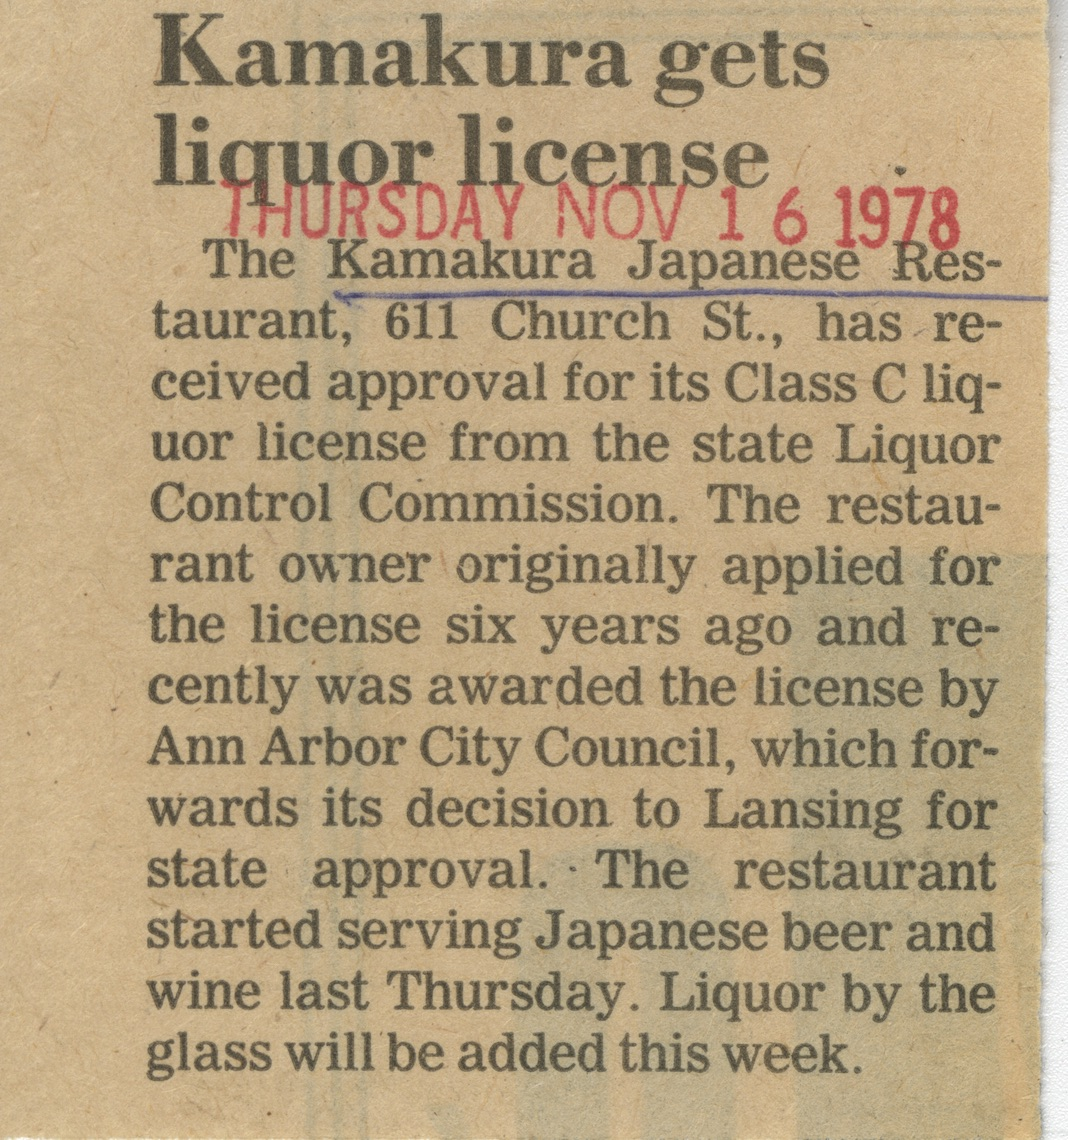 Kamakura gets liquor license image